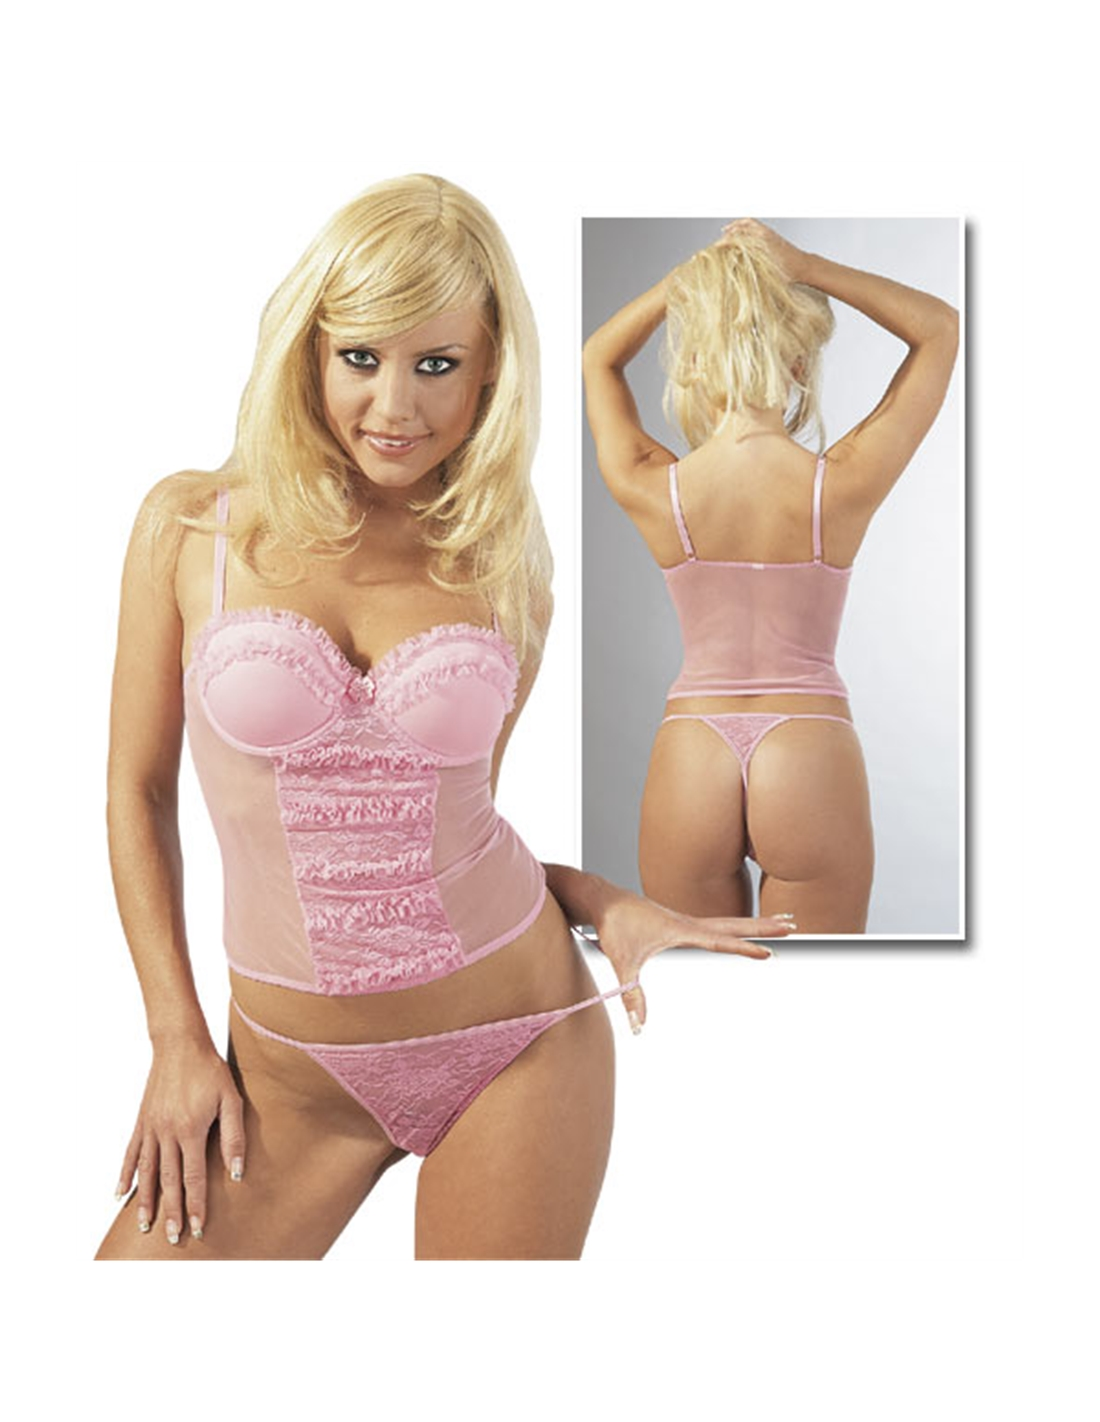 Top Rosa Com Tanga 80B/M - 80B/M - DO29000543